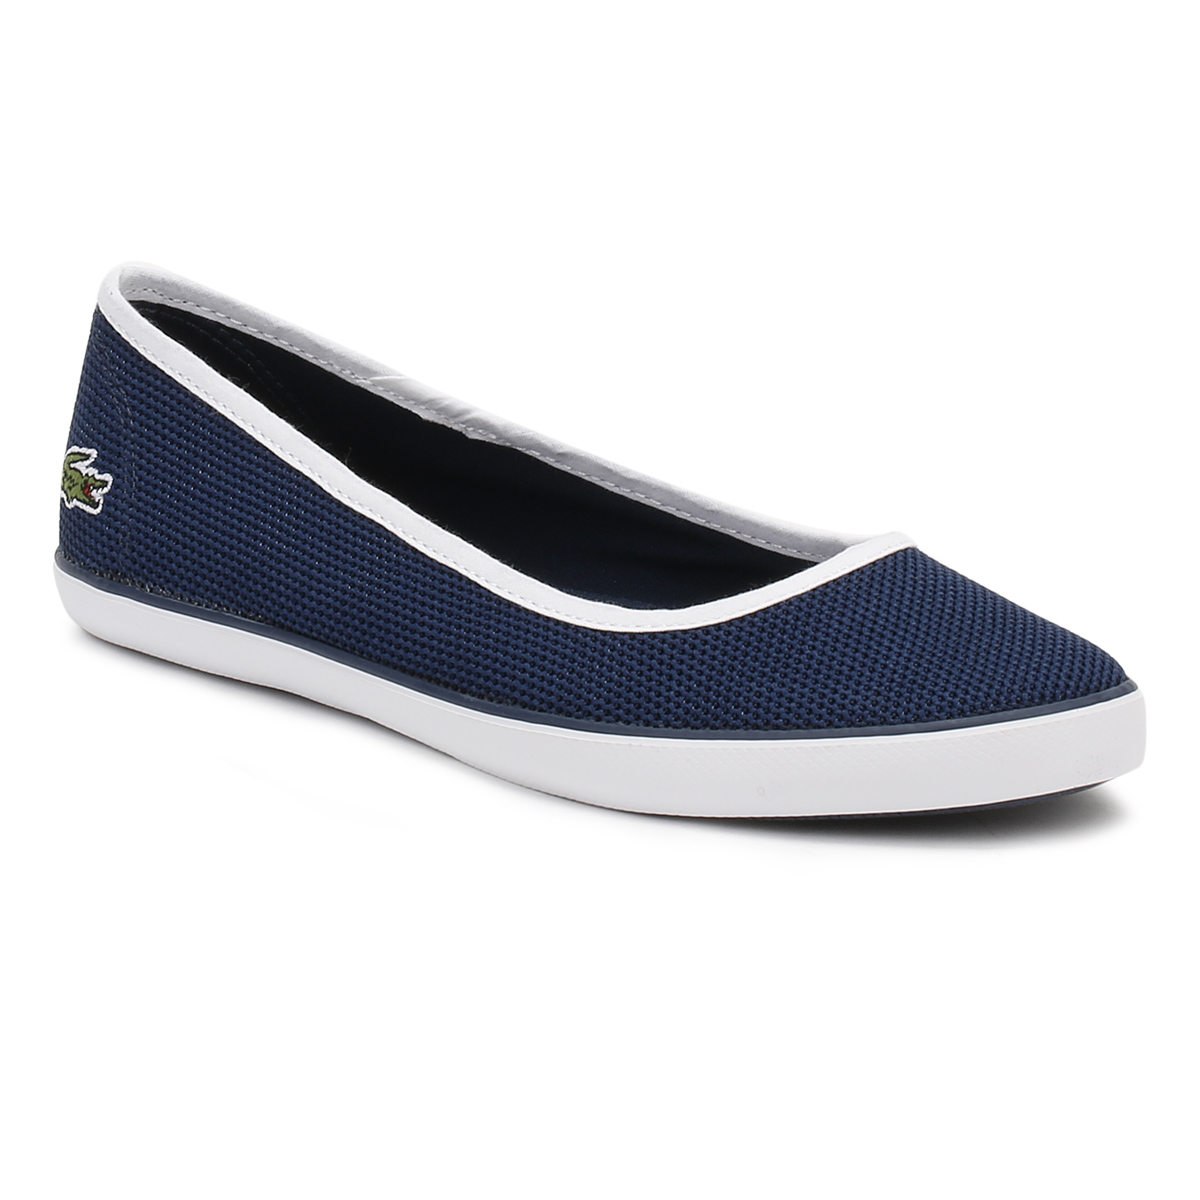 lacoste shoes for women images galleries with a bite. Black Bedroom Furniture Sets. Home Design Ideas